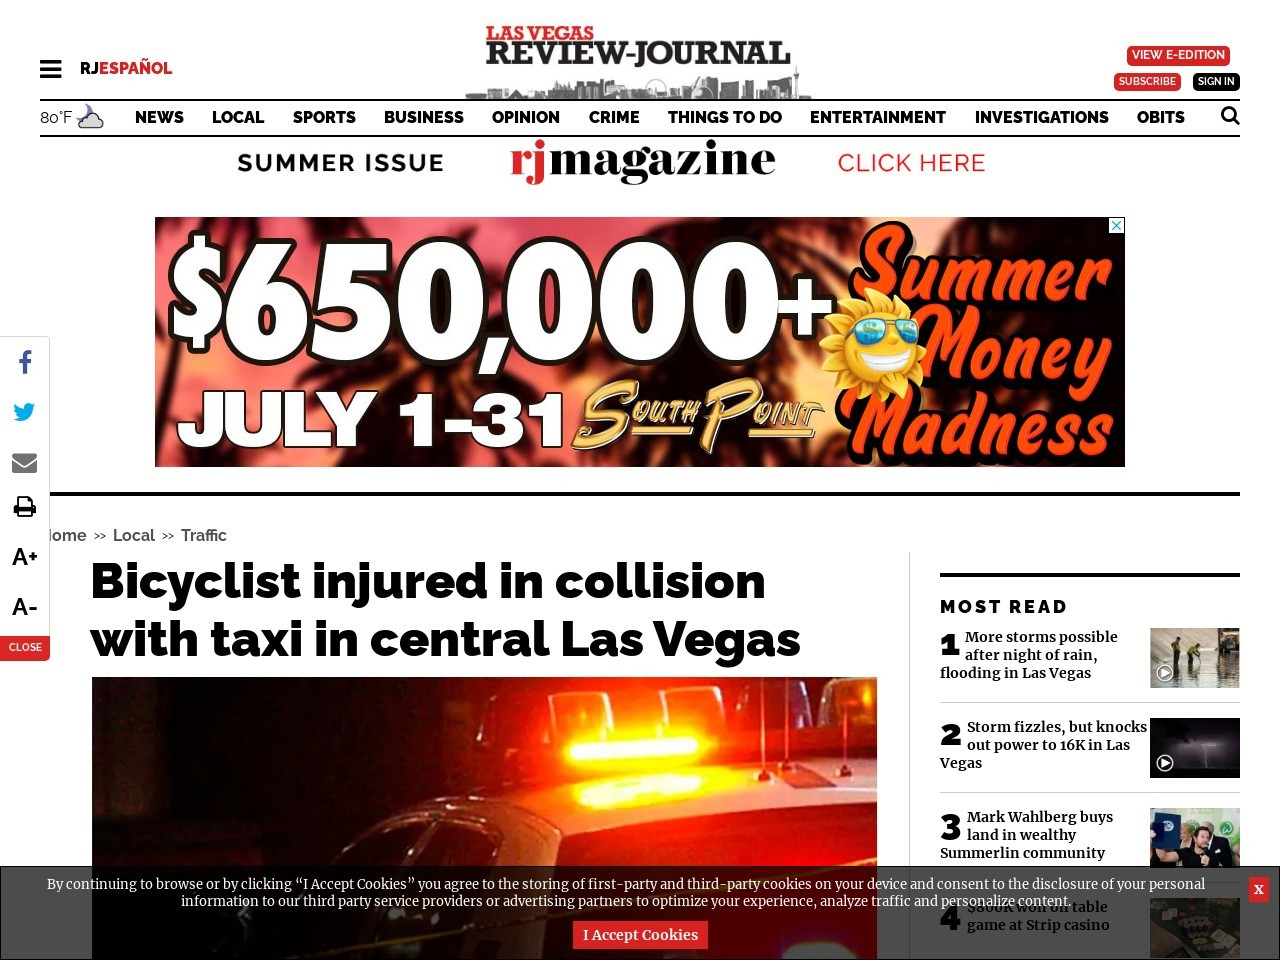 Bicyclist injured in collision with taxi in central Las Vegas